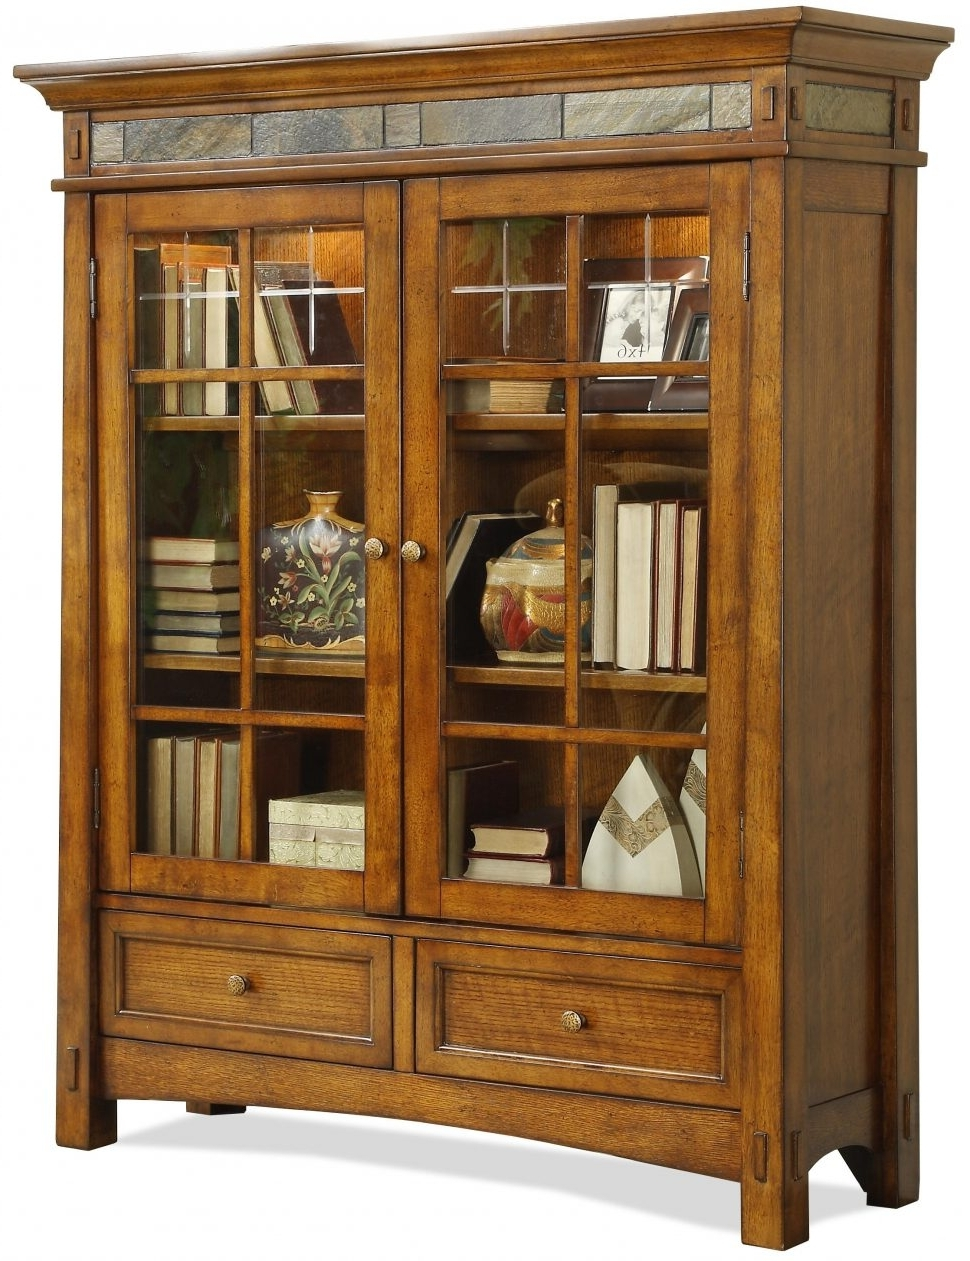 Furniture Home: Wooden Bookcases Furniture Home Large Solid Wood Within Current Large Solid Wood Bookcases (View 5 of 15)